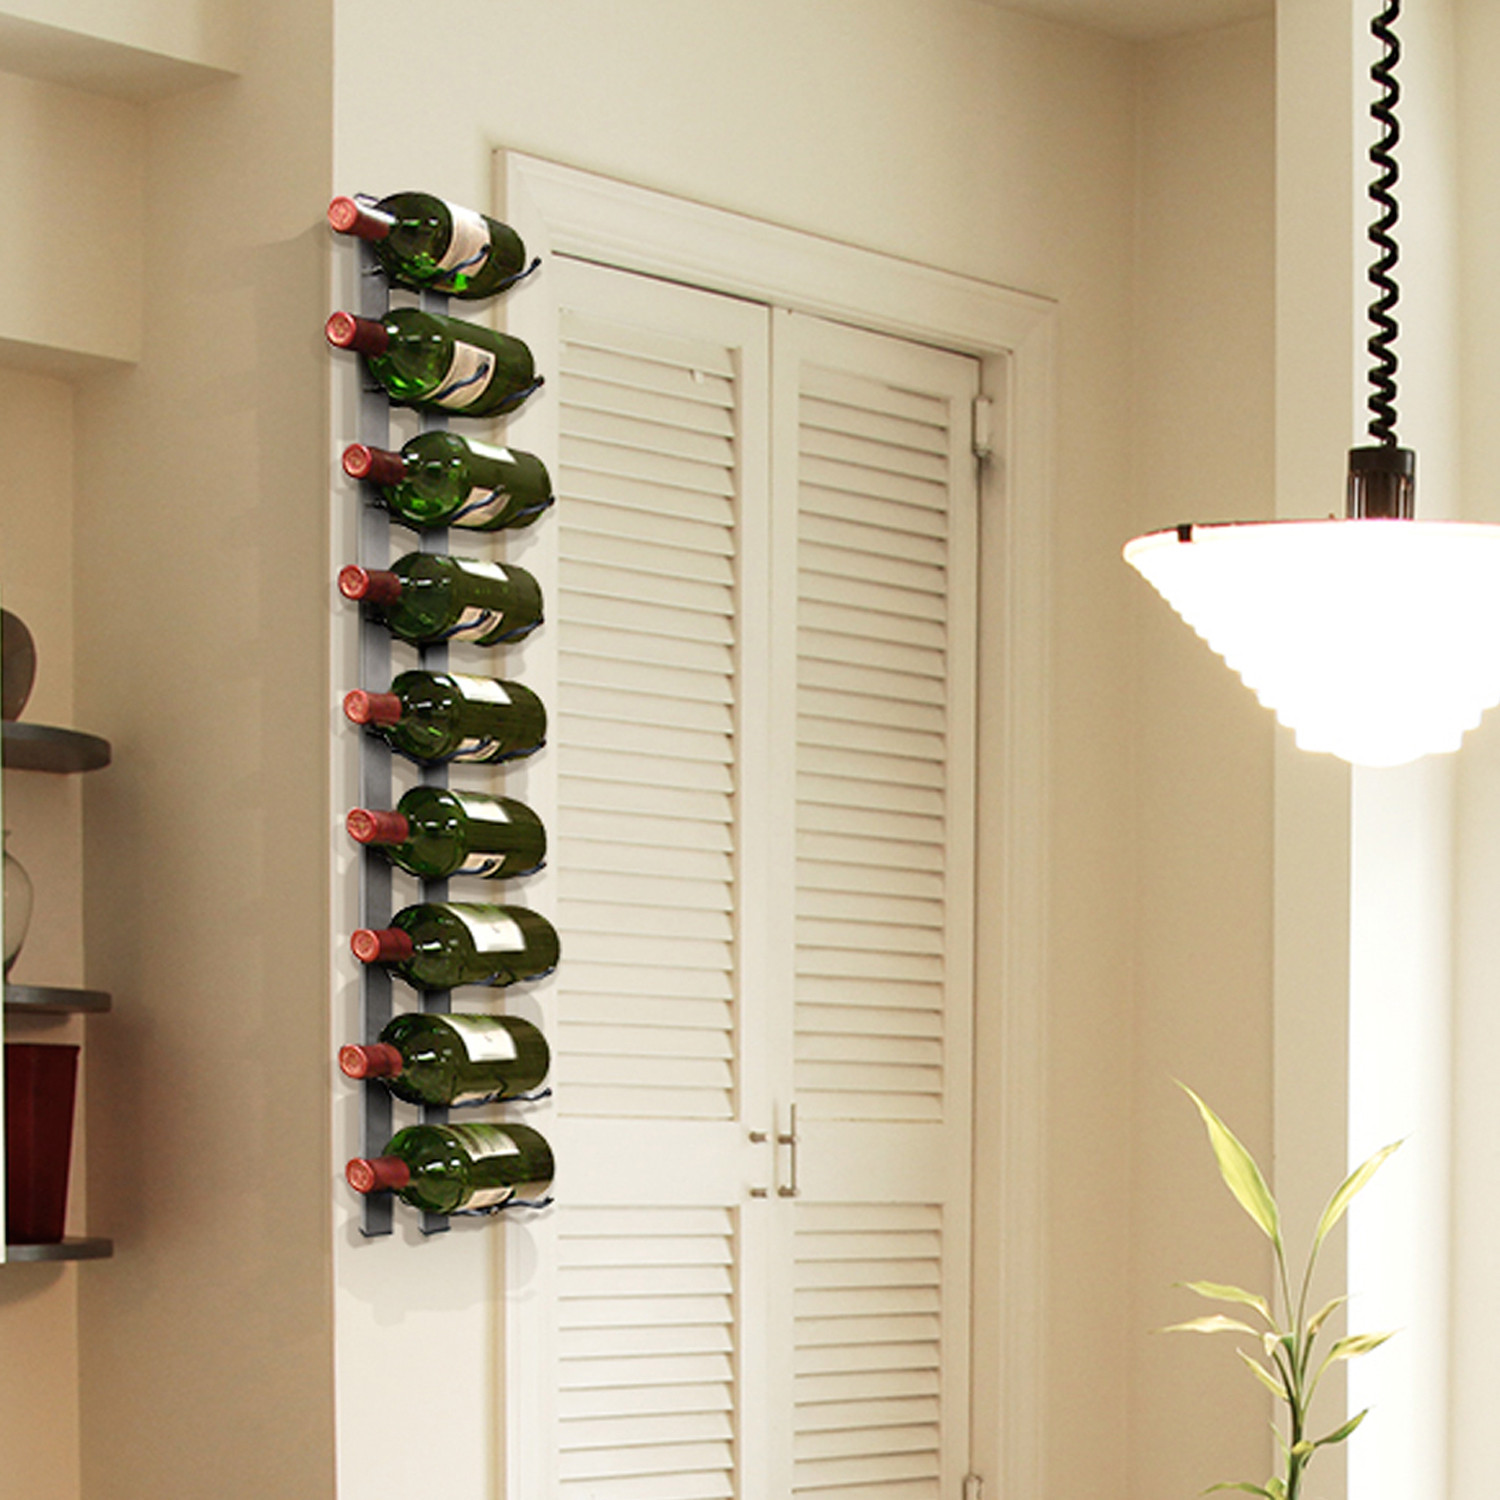 Wall Mounted Wine Rack // 9 Bottles - Epicureanist - Touch of Modern